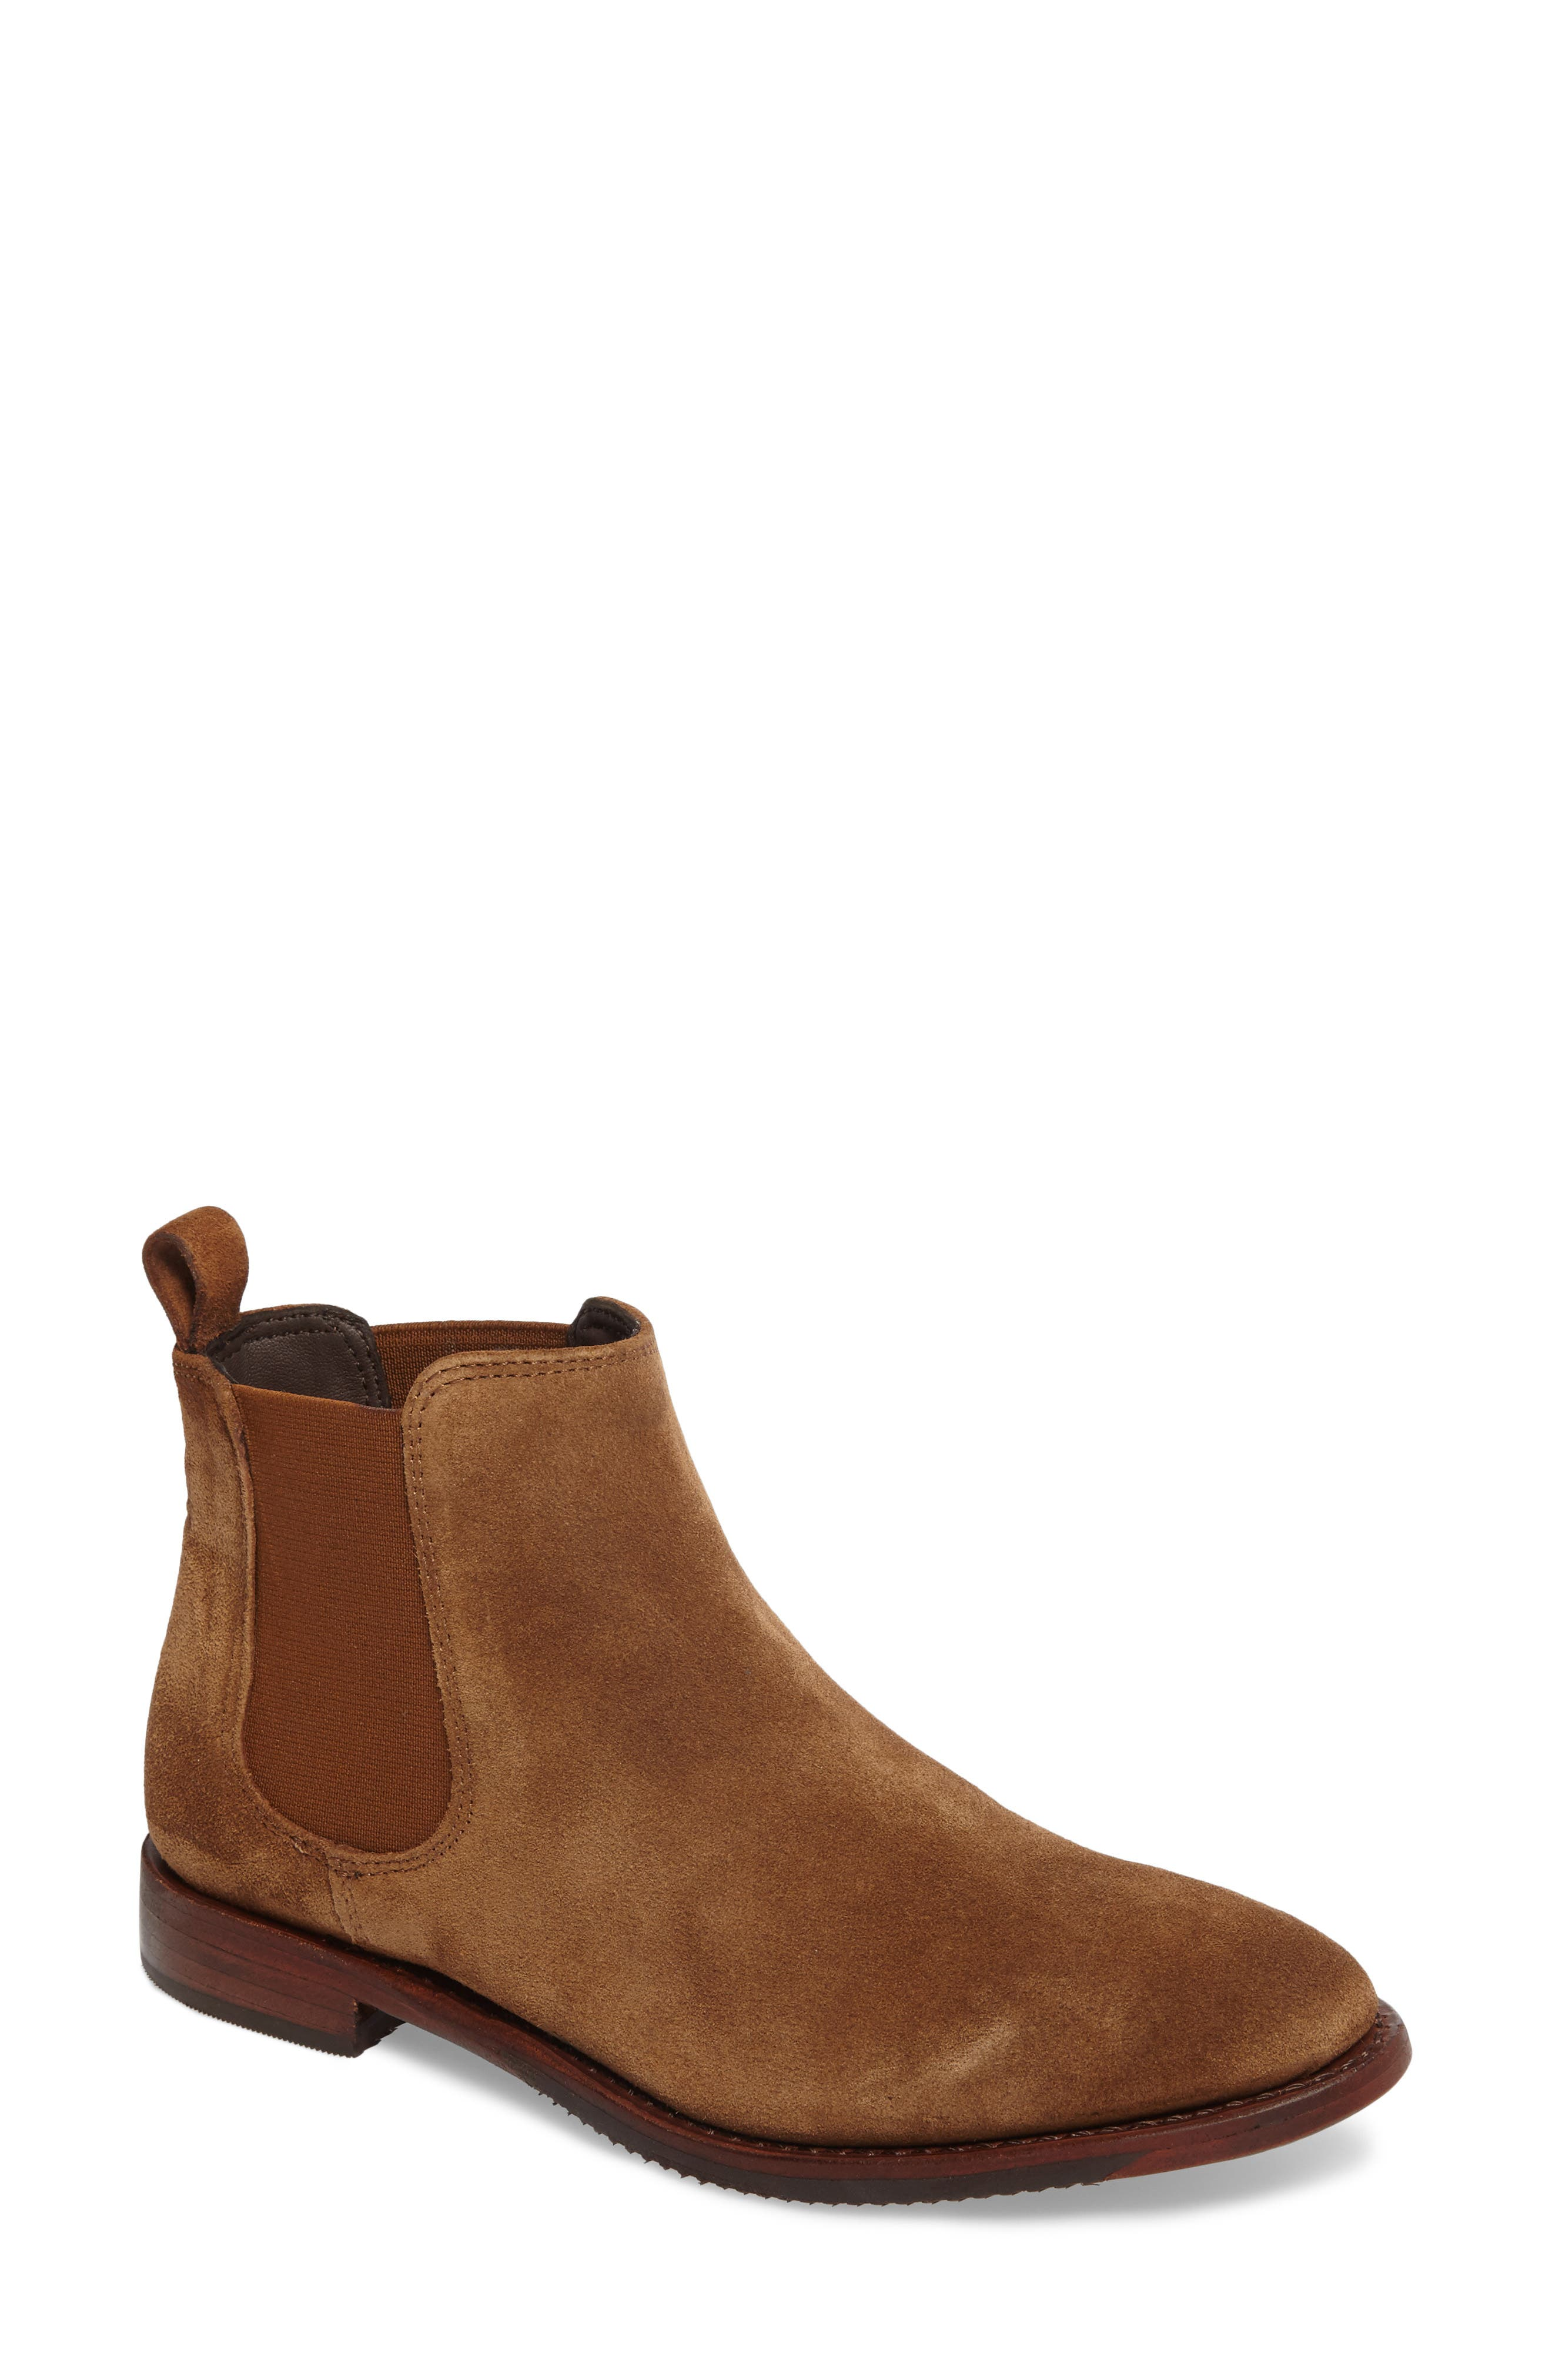 Gabrielle Chelsea Boot,                         Main,                         color, Brown Suede